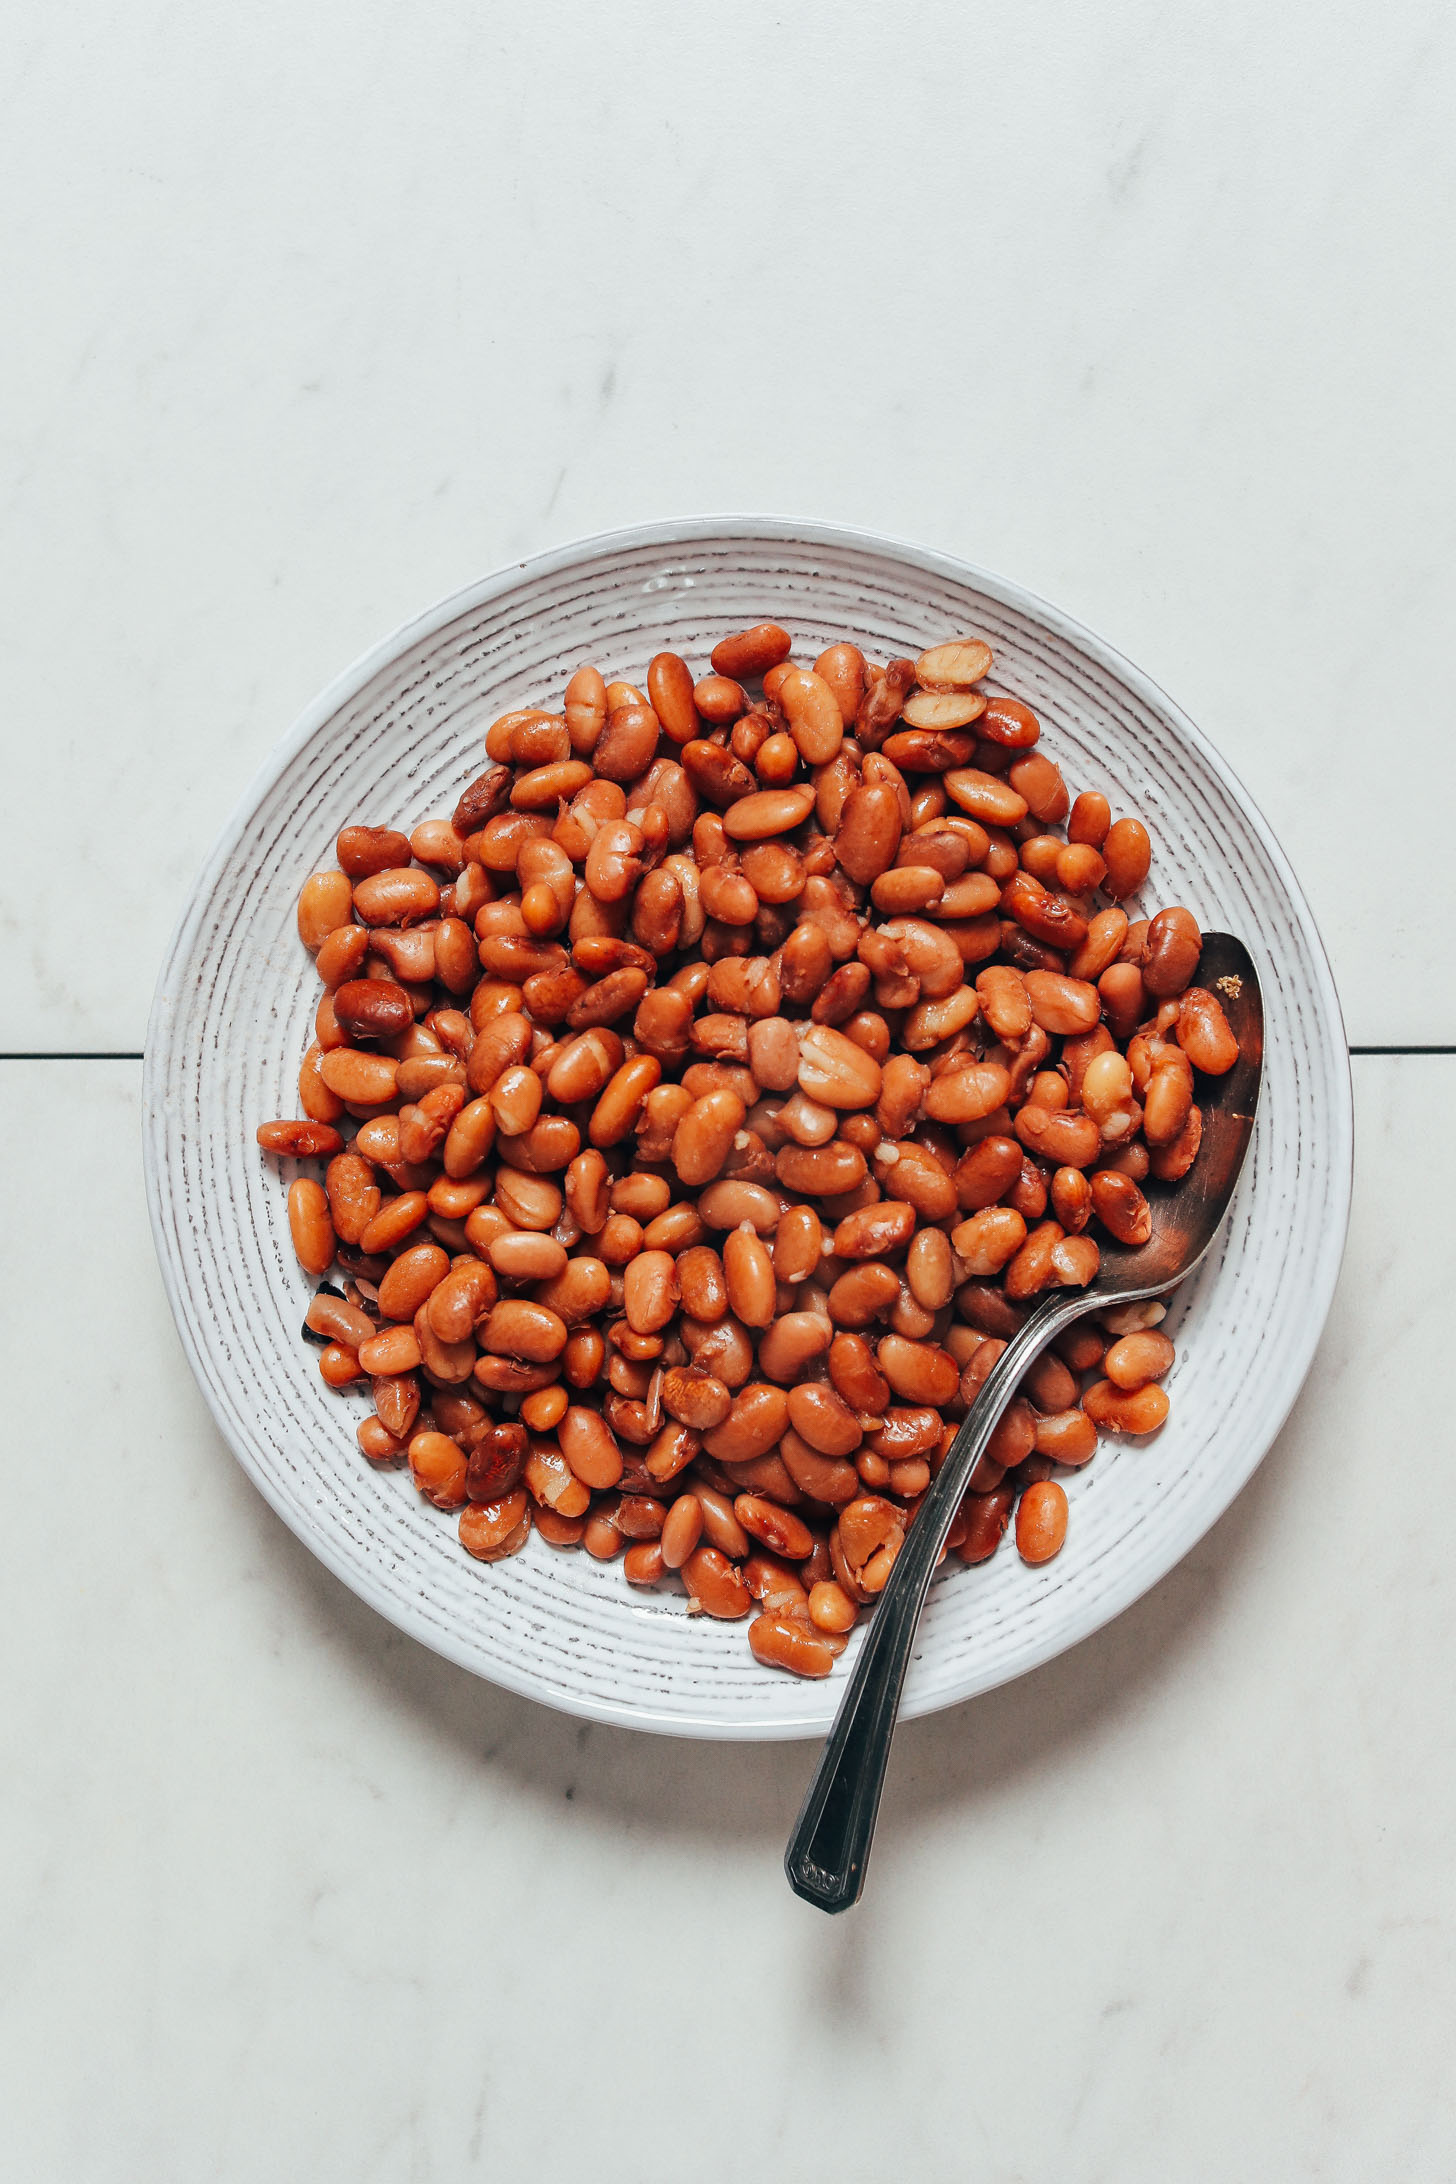 Vintage spoon in a bowl of Instant Pot pinto beans